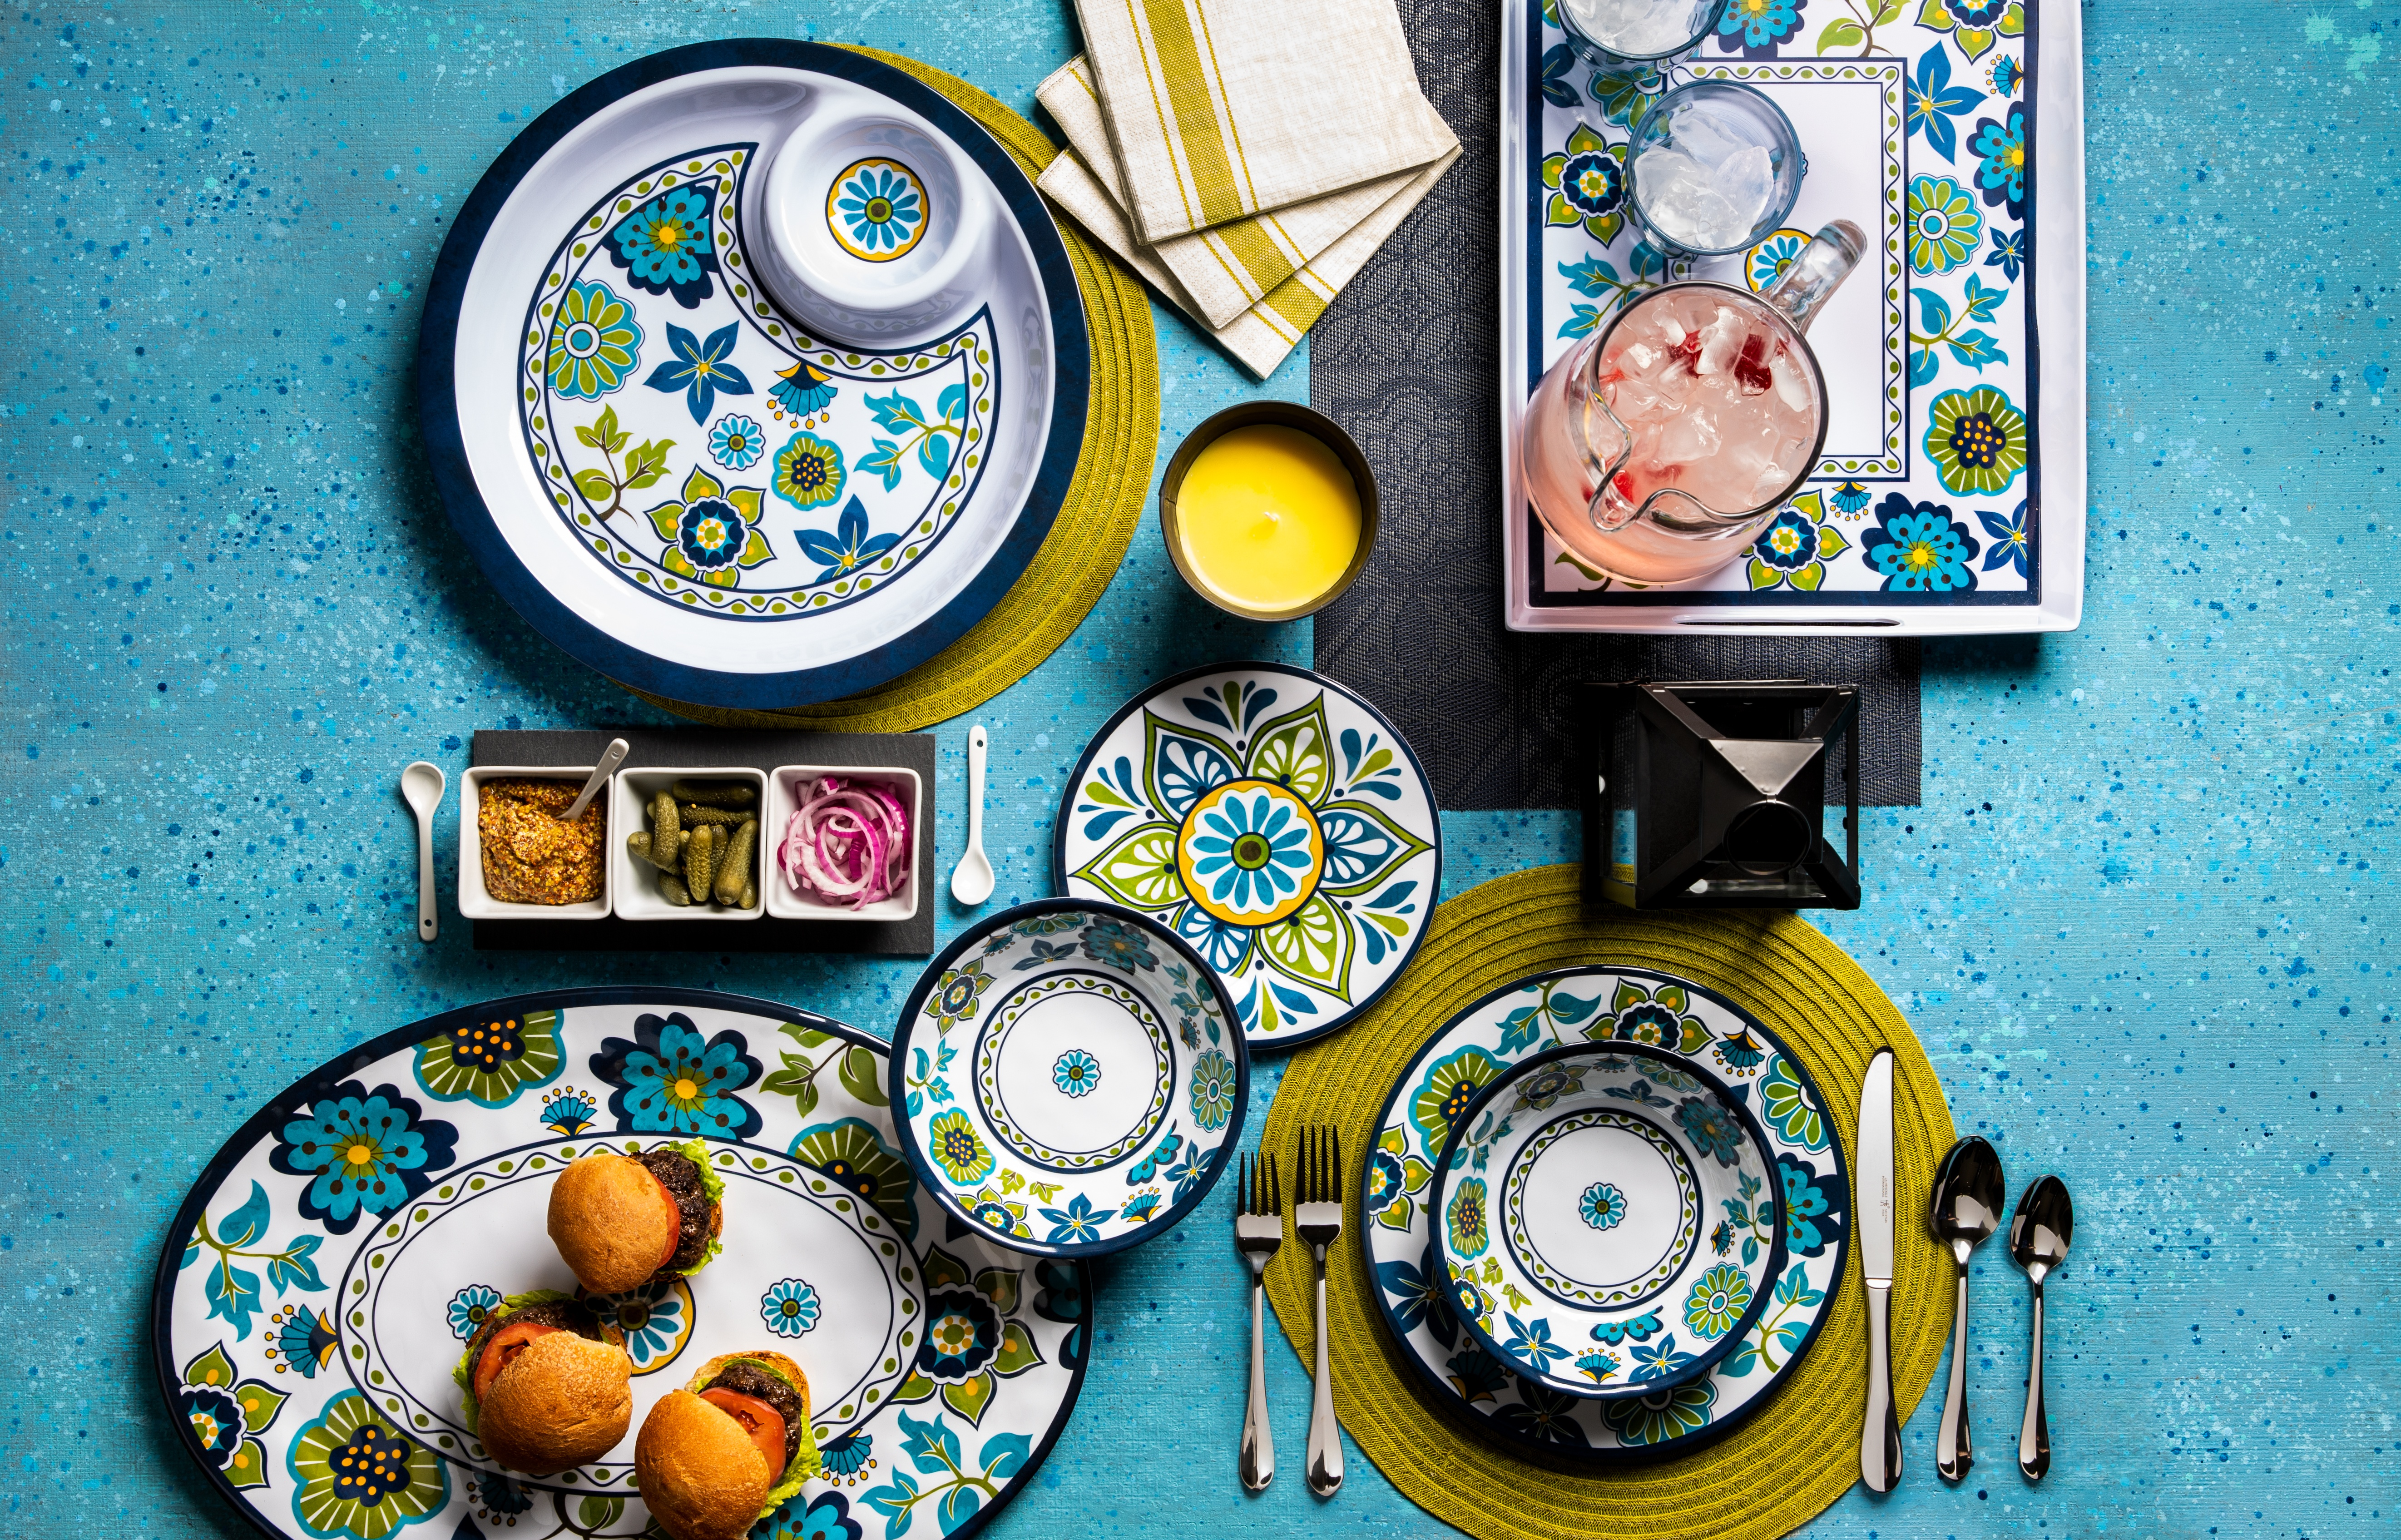 madrid melamine dinnerware collection Make The Most Of Your Summer